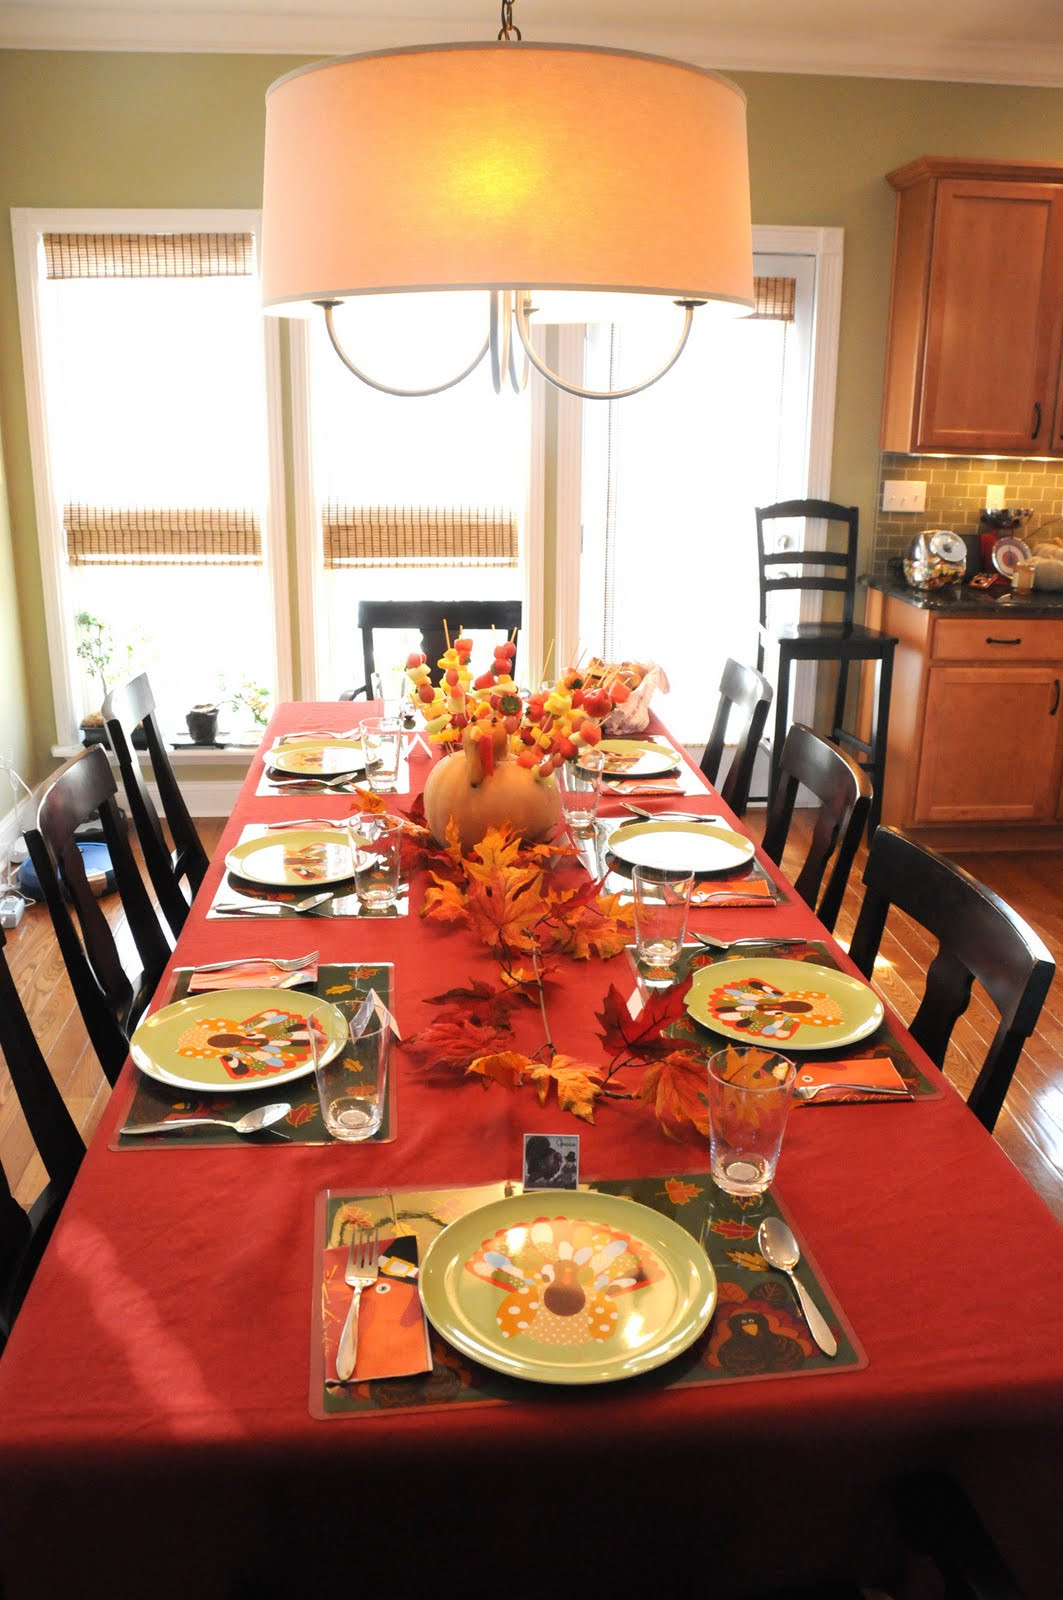 Dinner Table Decorating  Thanksgiving Decor The Polkadot Chair